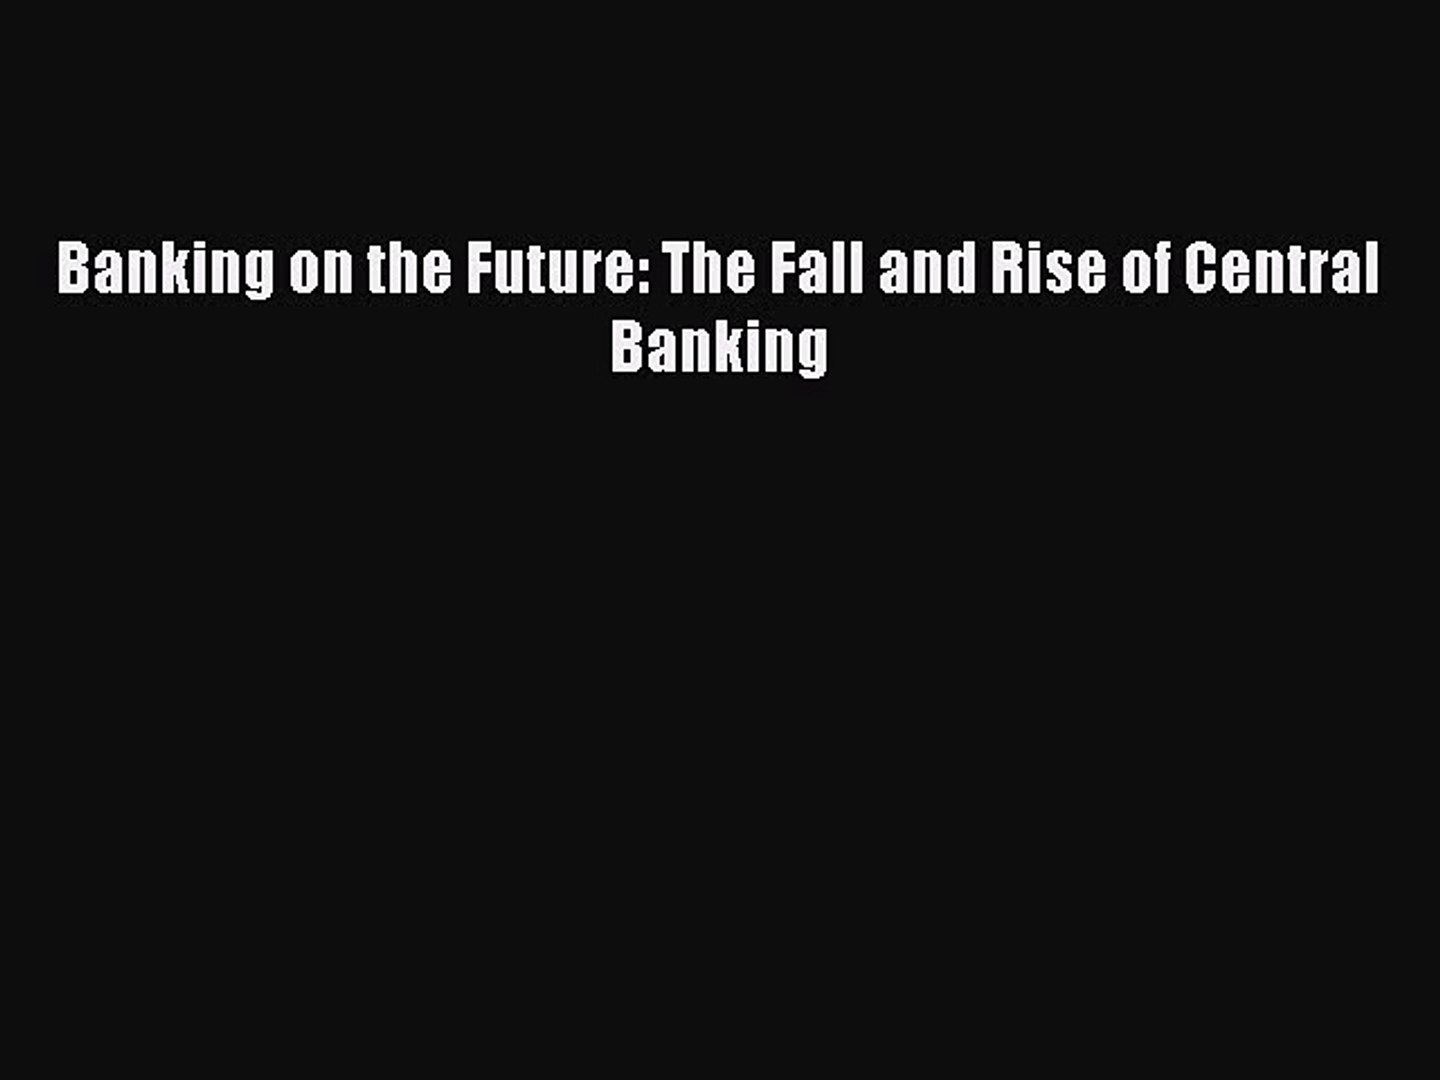 [Read book] Banking on the Future: The Fall and Rise of Central Banking [PDF] Full Ebook